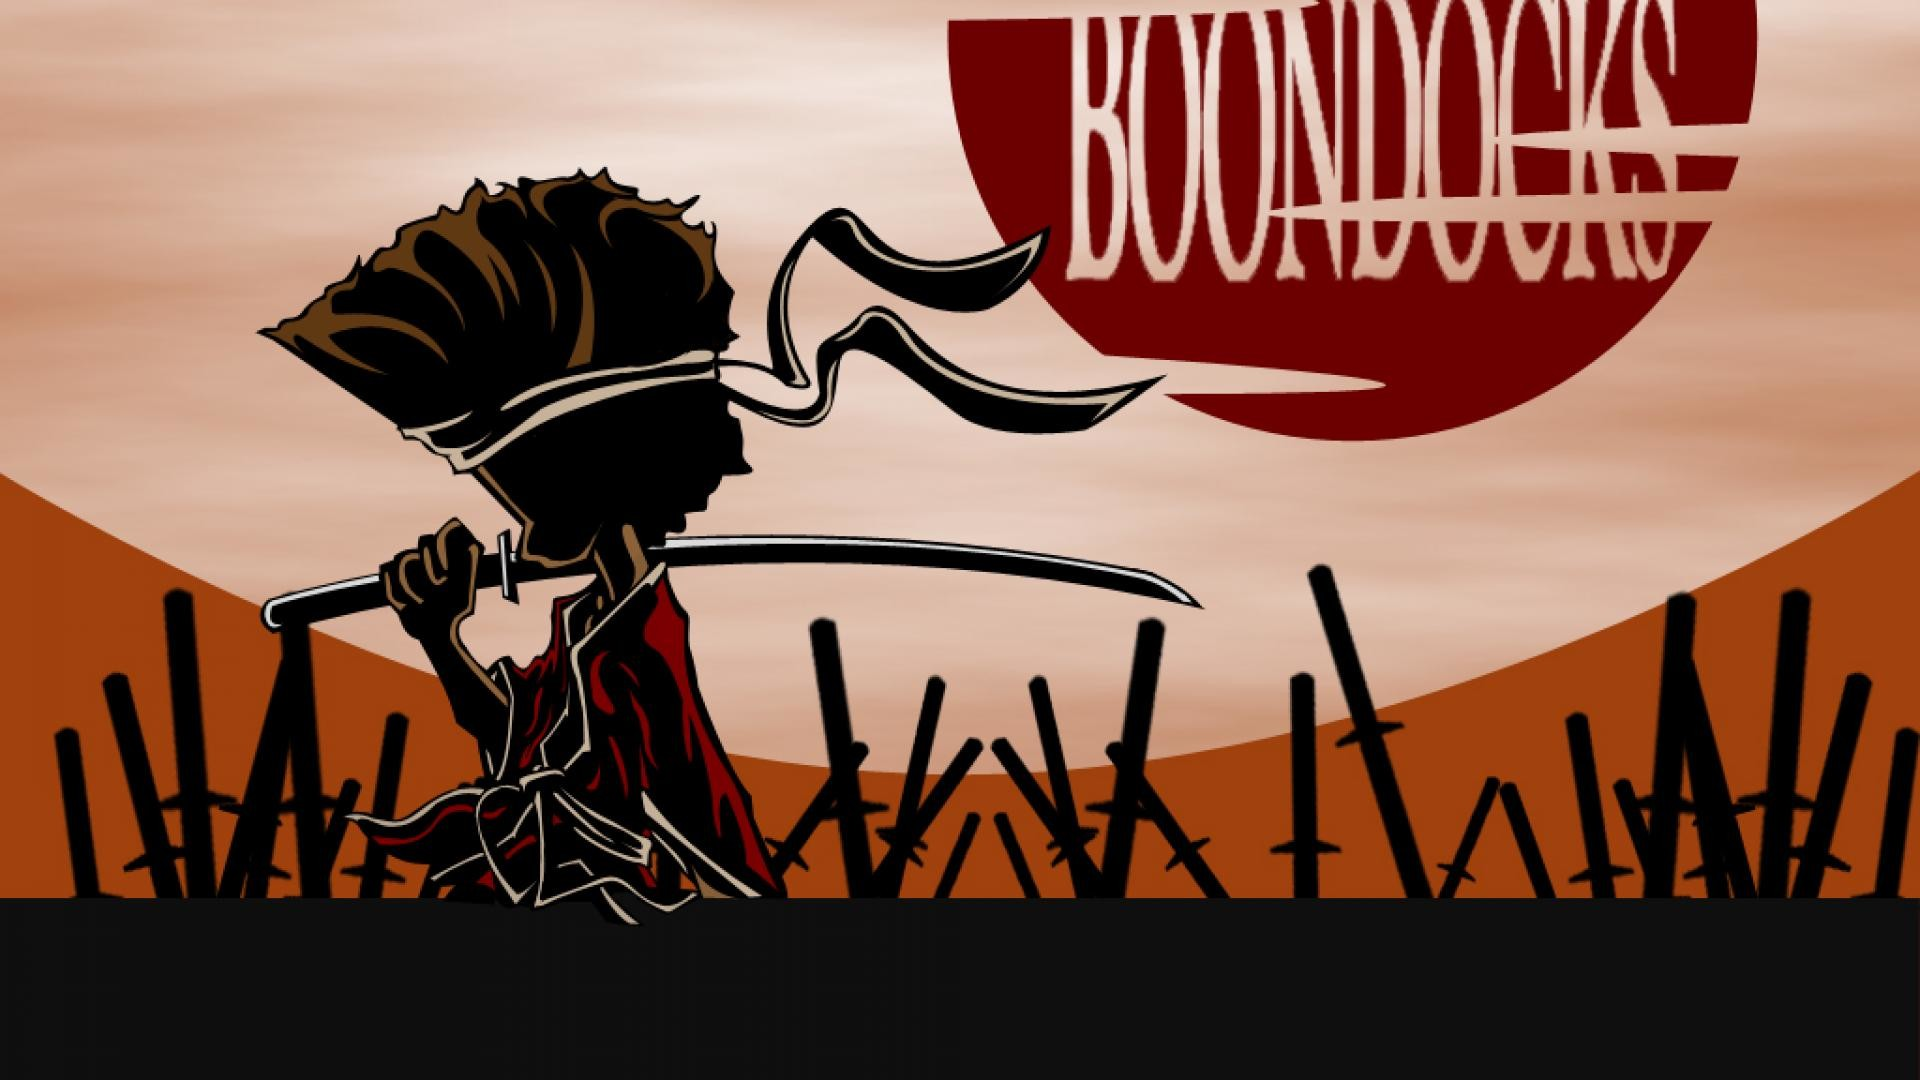 Res: 1920x1080, ... The Boondocks Quality Wallpapers - RZR-HD Background Wallpapers ...